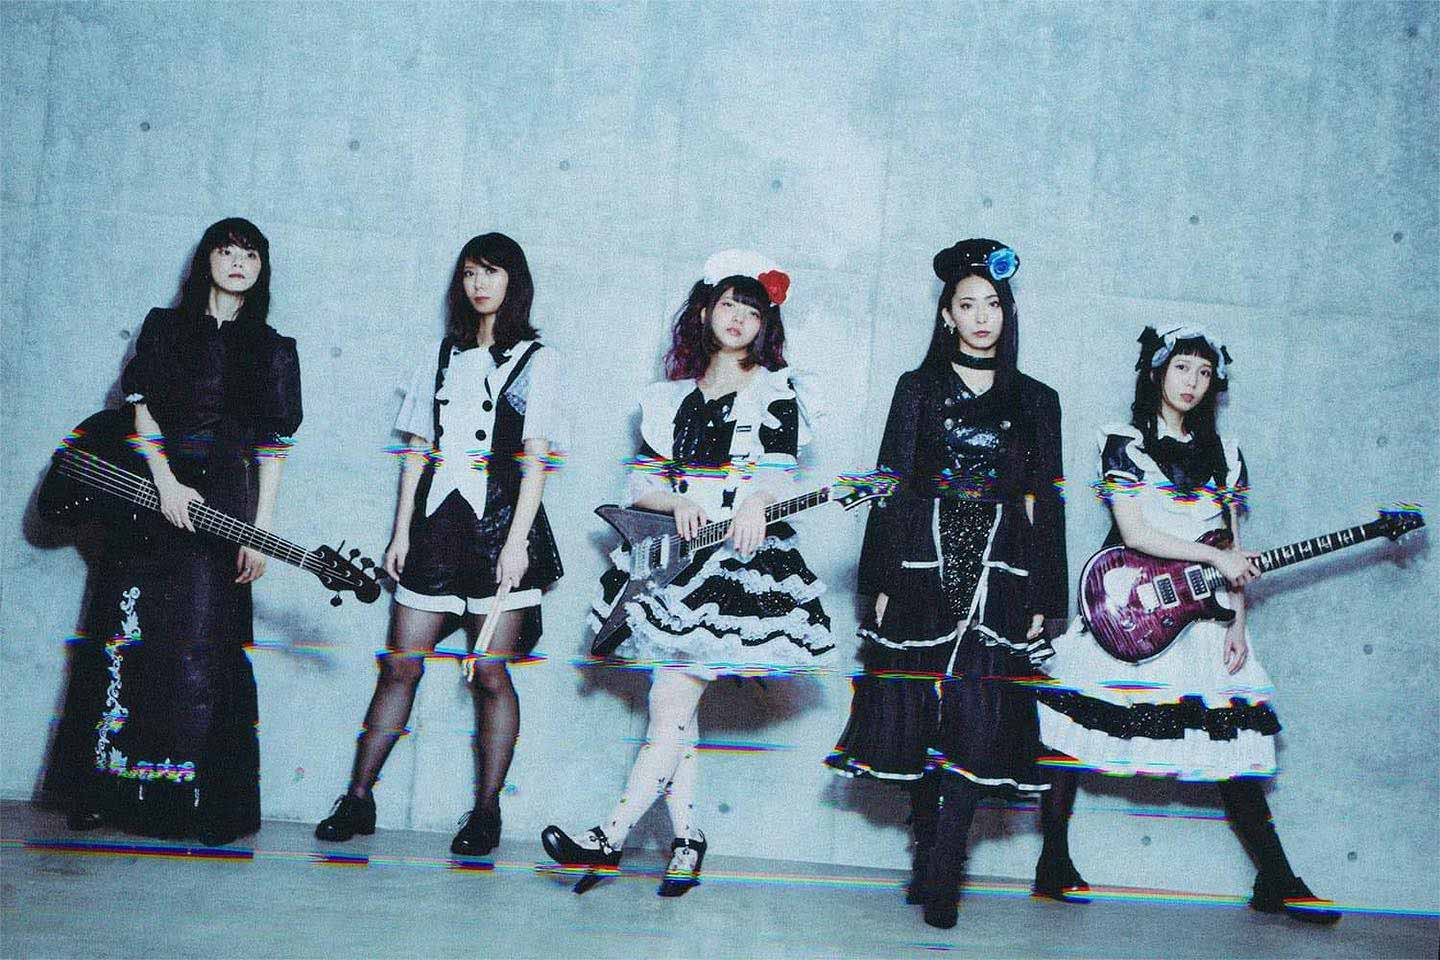 BAND-MAID new pic 2021